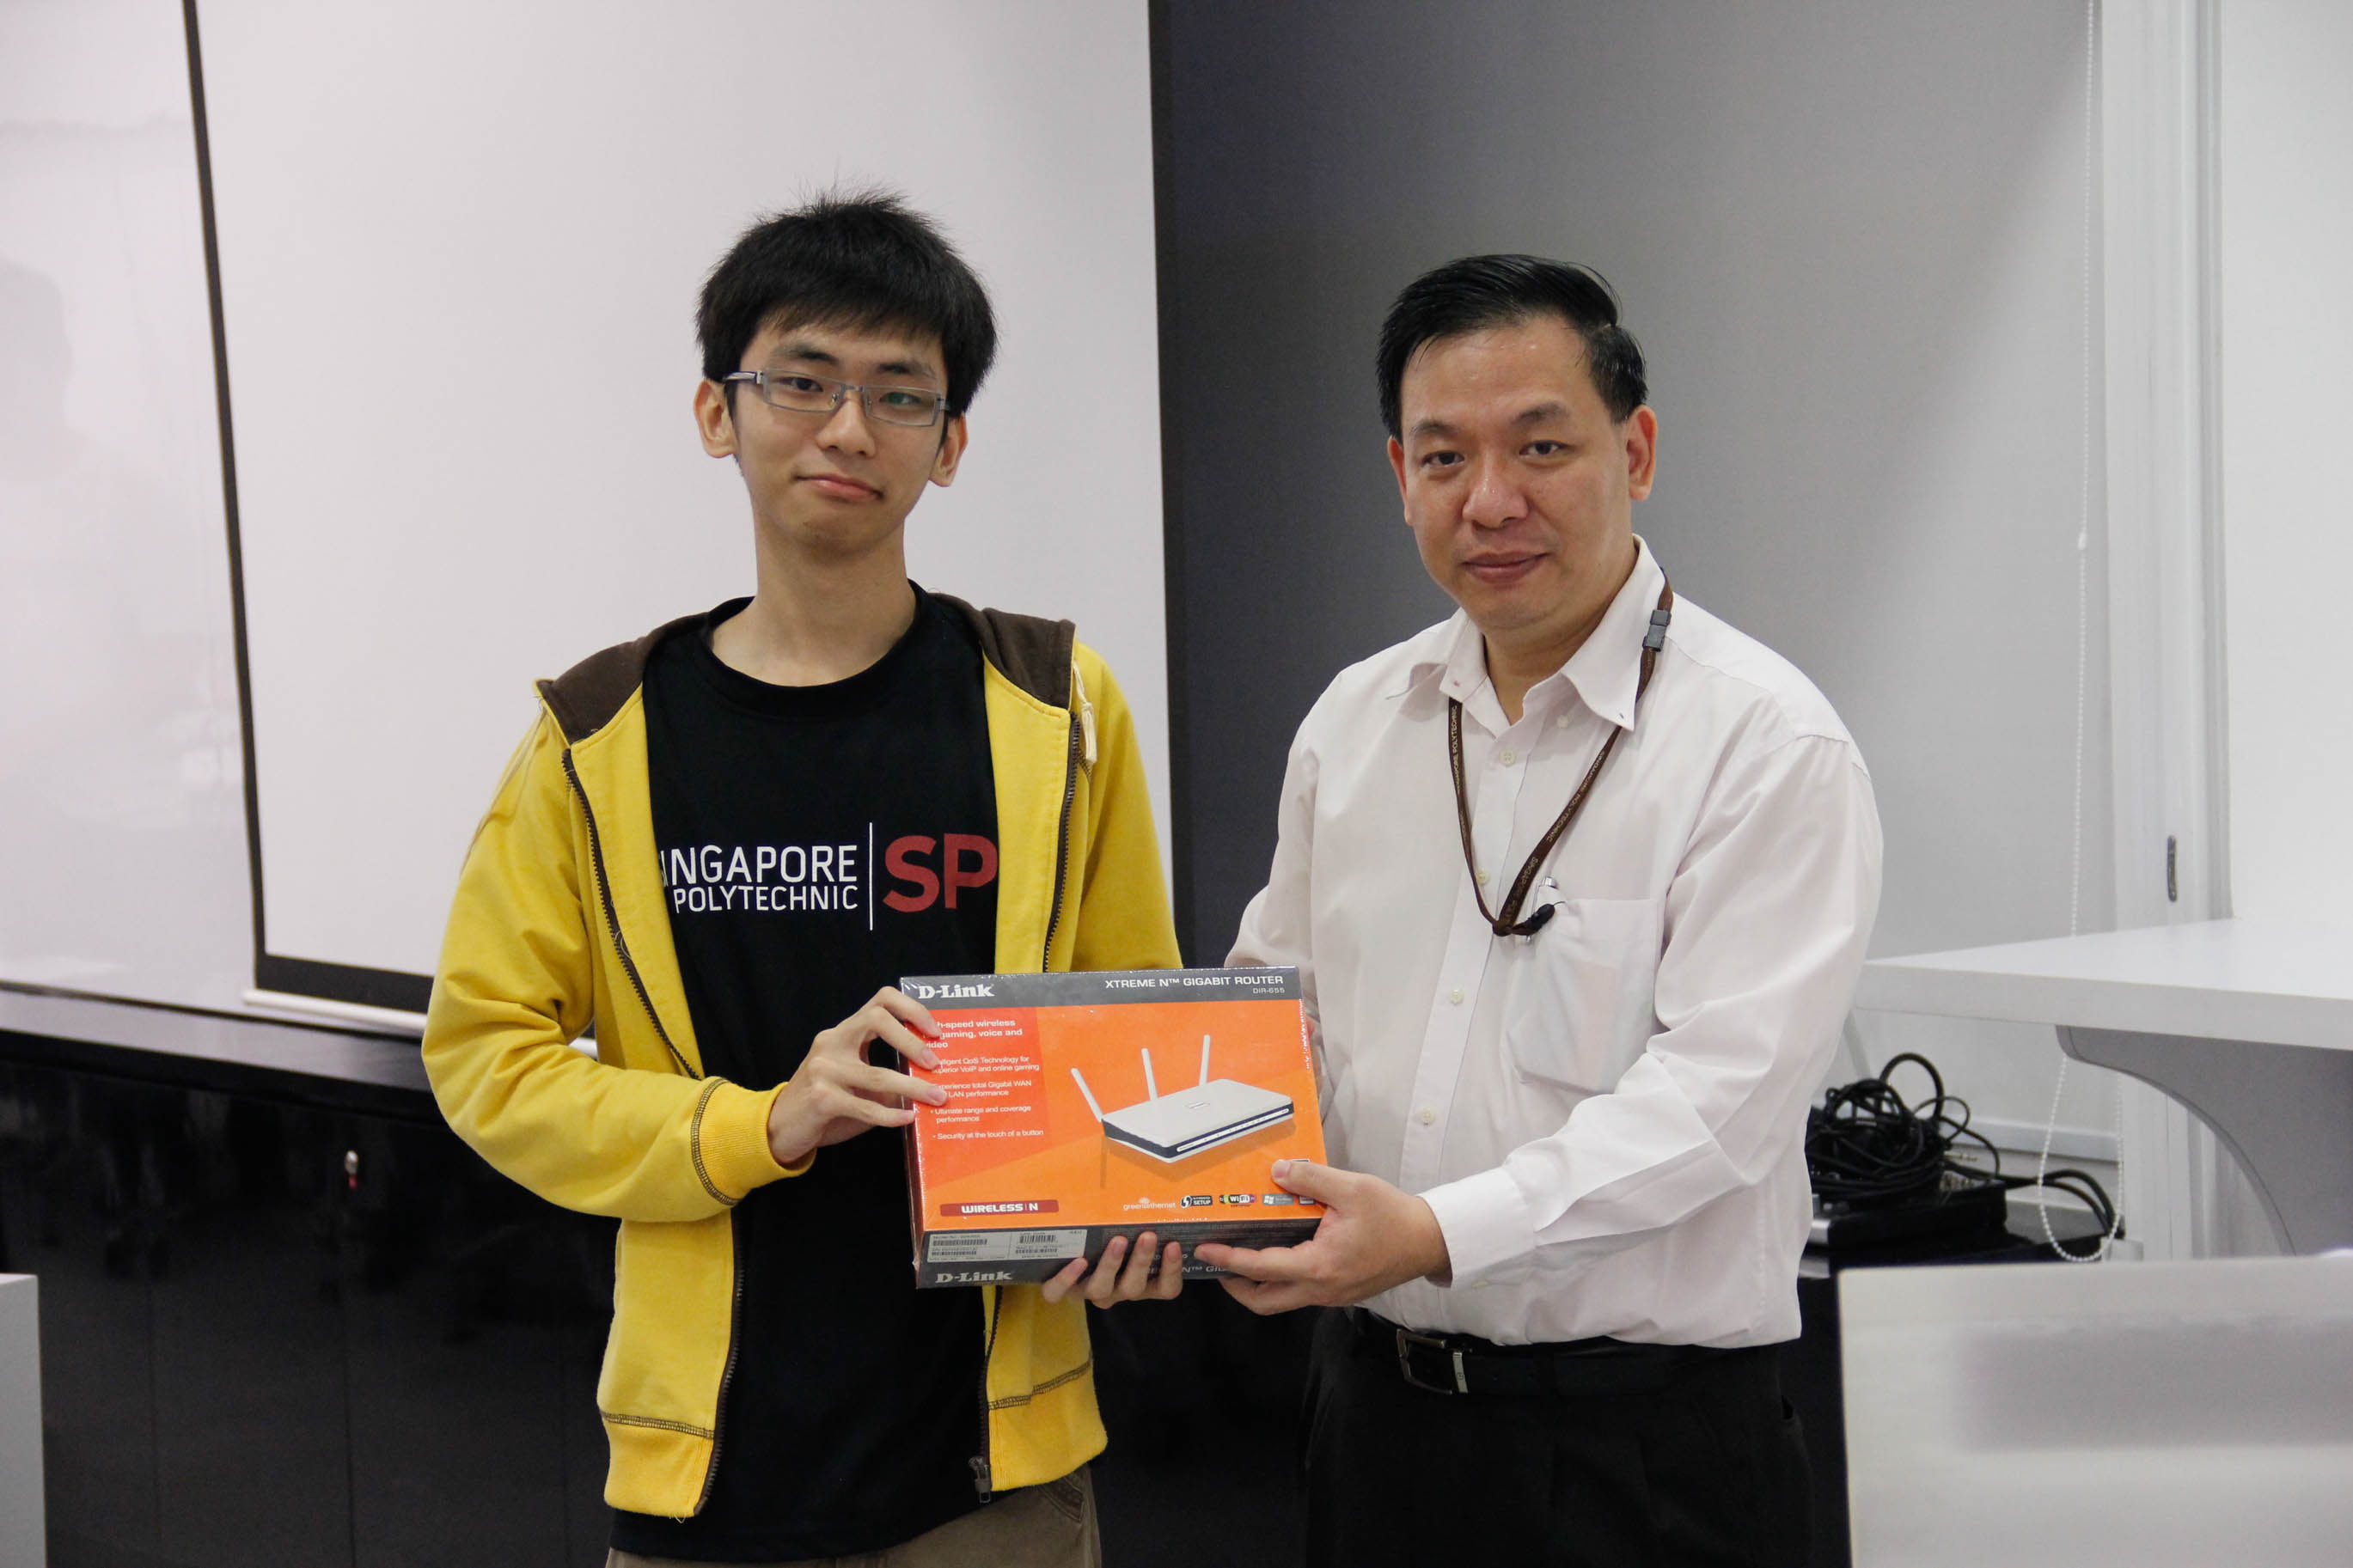 New ISACA Student Member, lucky draw grand winner as well as event photographer Dixon Soo with Mr Yeow